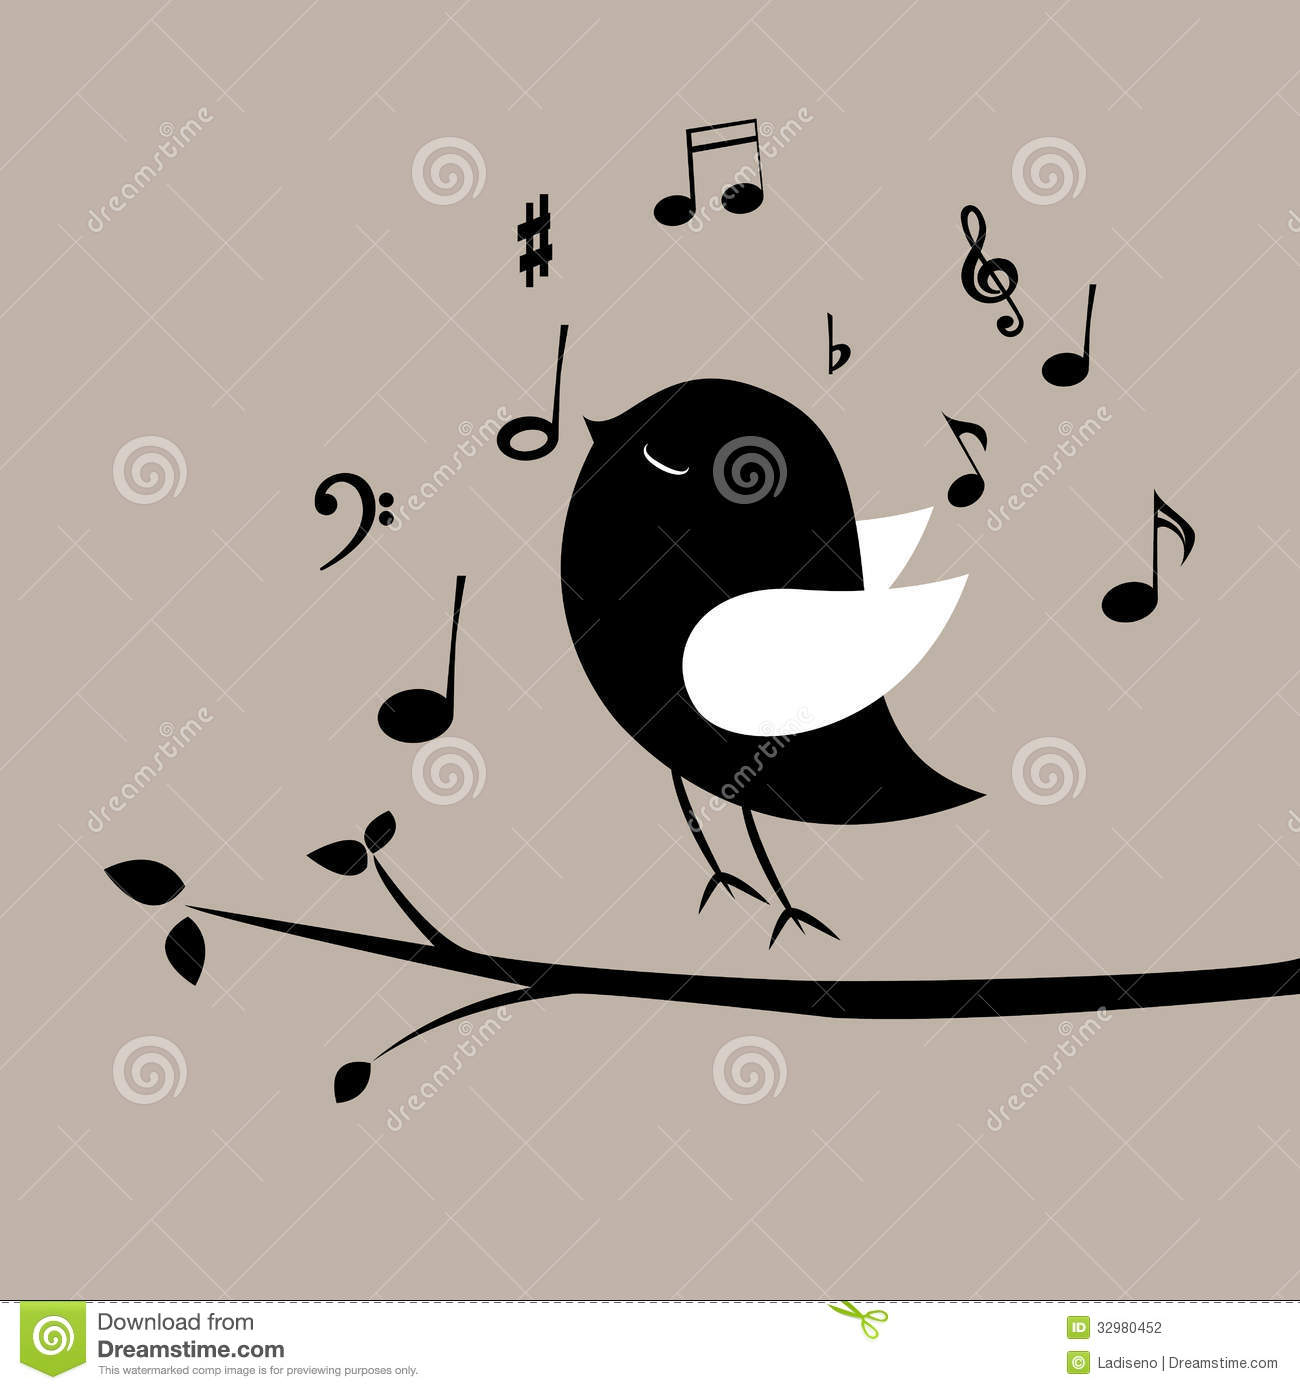 Music bird with music notes on gray background.